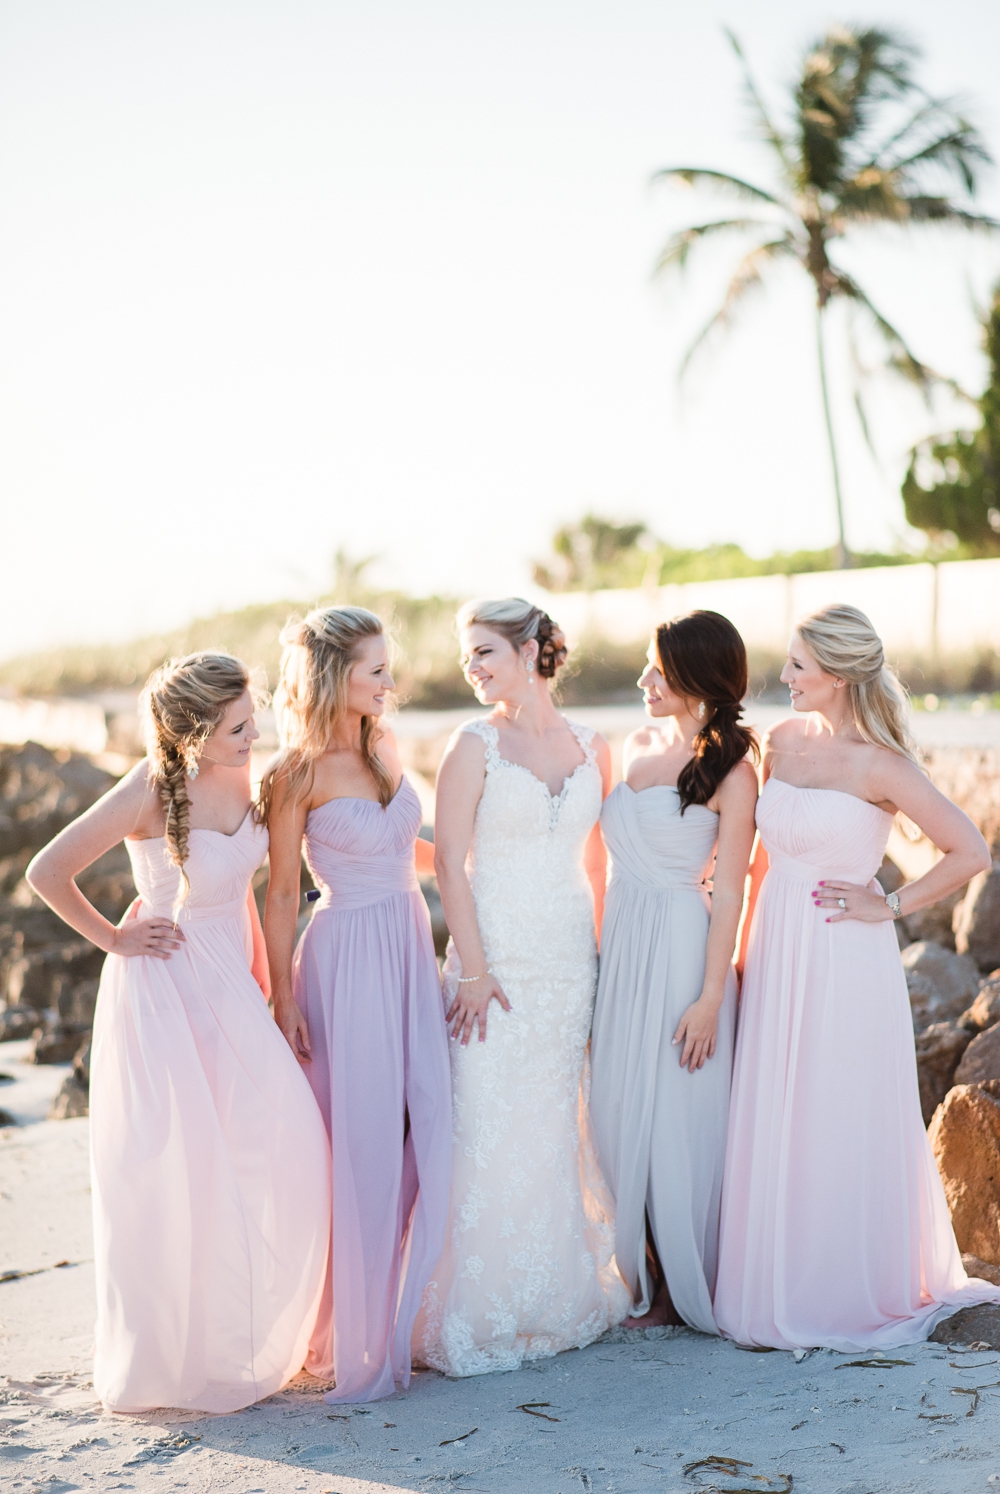 2016 HLM Wedding Beach Shoot 12.jpg